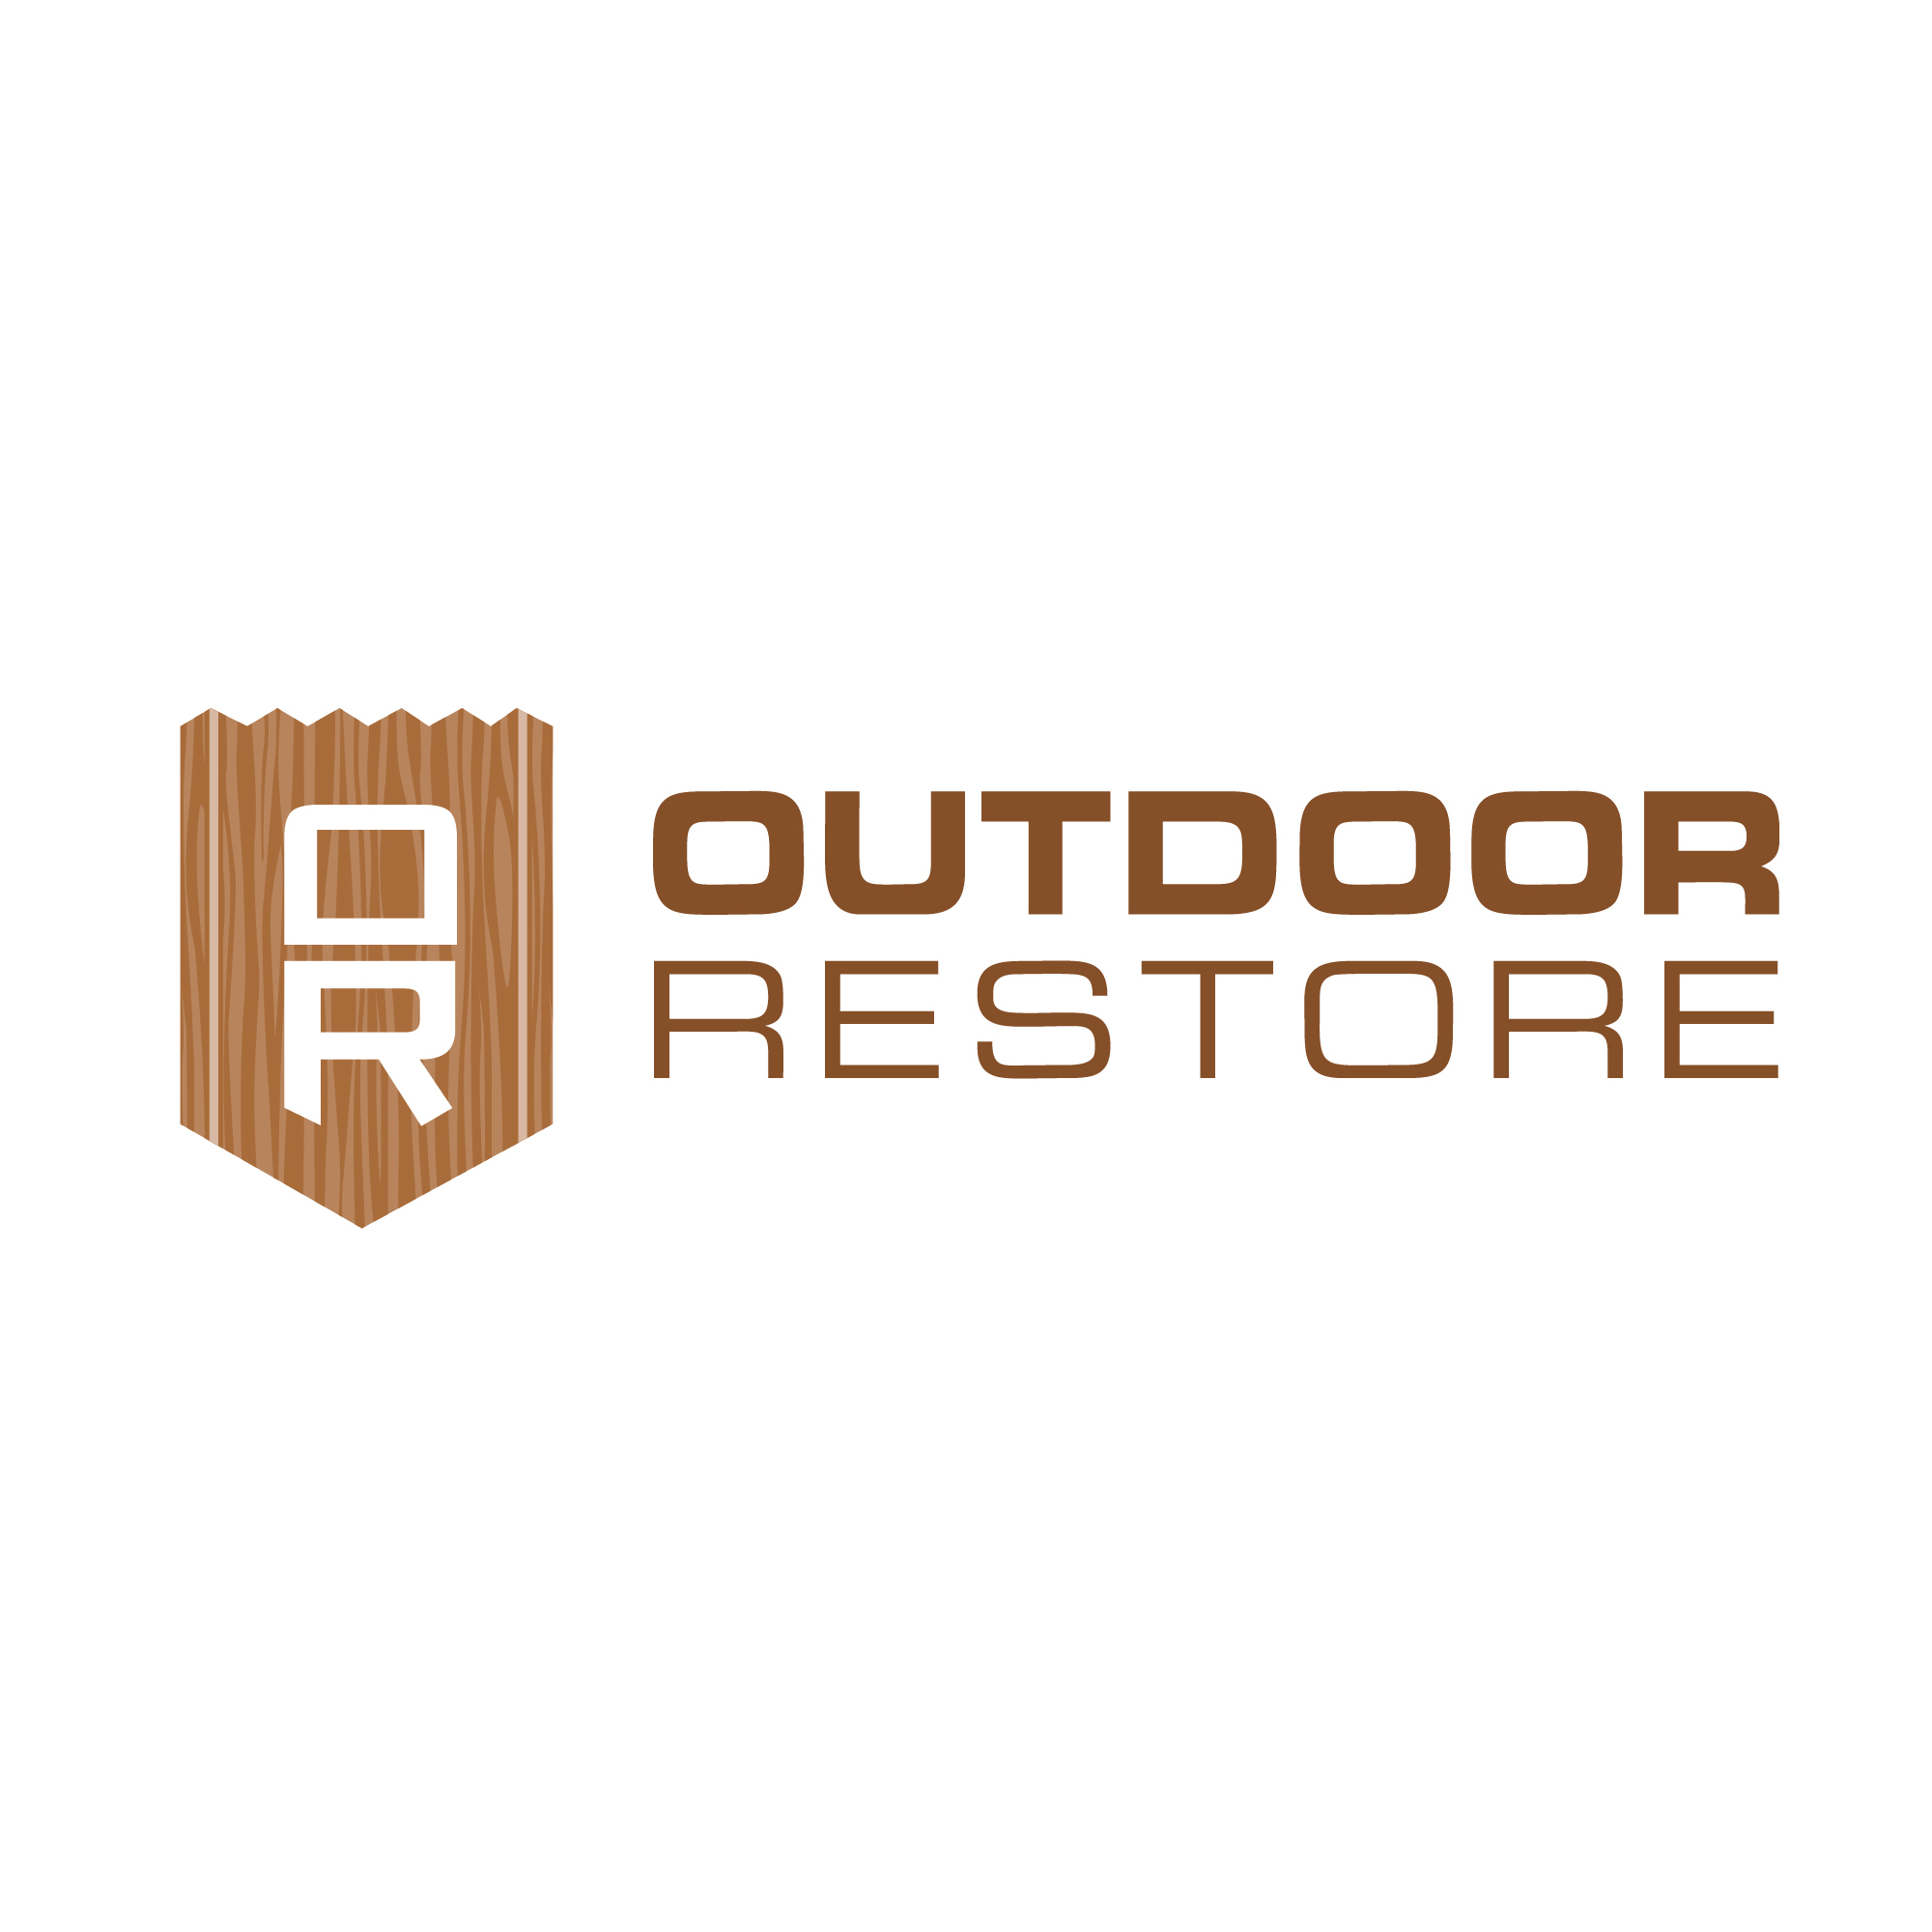 Outdoor Restore Minneapolis Mn Business Directory